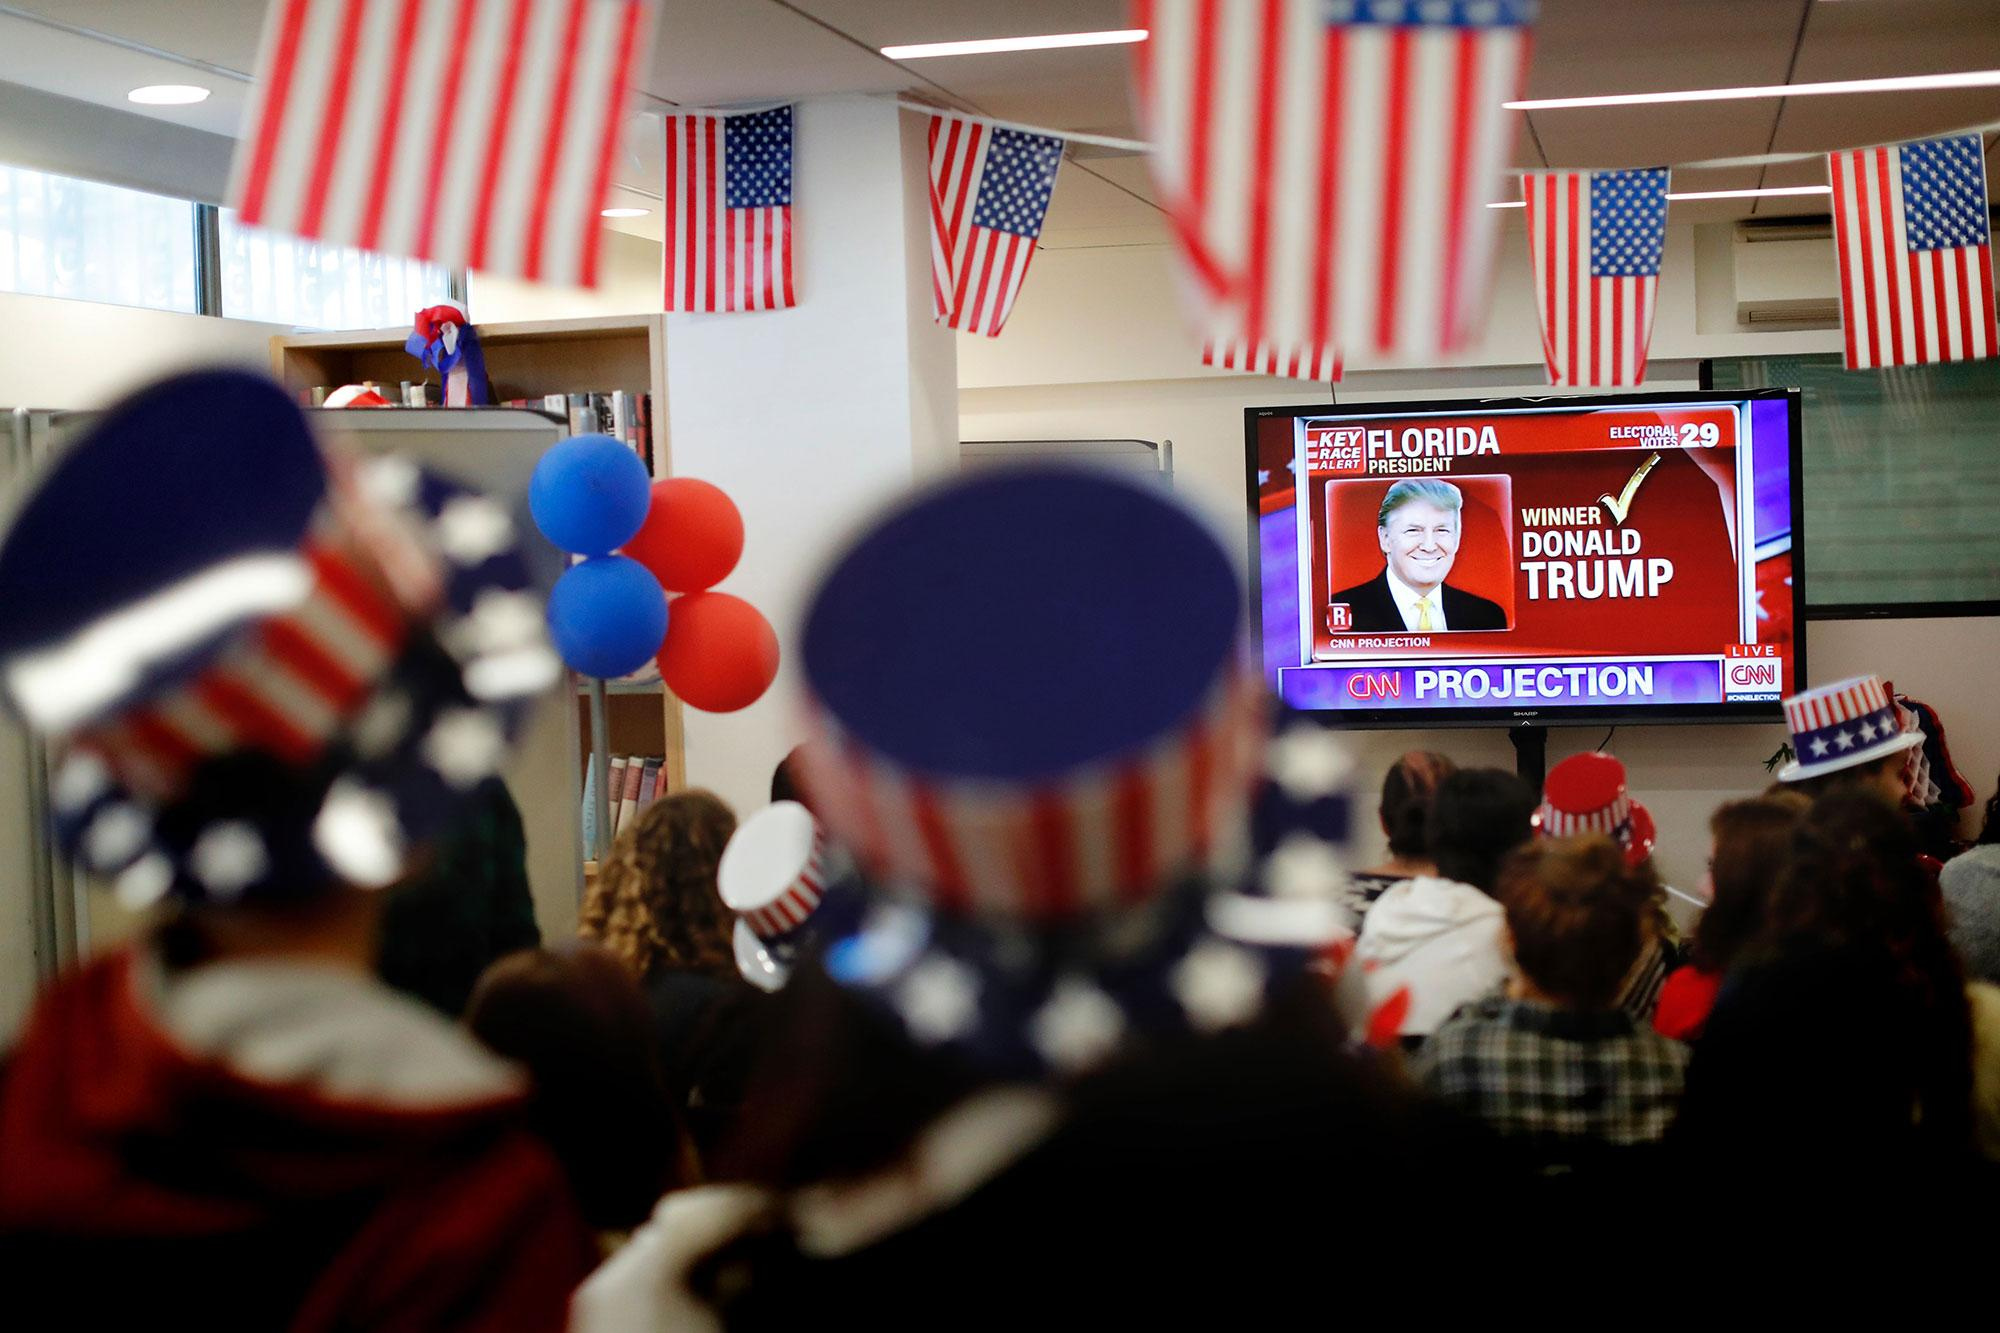 <p>Israelis follow the US presidential elections on TV at the American Center in Jerusalem on November 9, 2016. Billionaire populist Donald Trump, tapping into an electorate fed up with Washington insiders, was on the verge of a shock victory Wednesday over Hillary Clinton in a historic US presidential election that sent world markets into meltdown. (Photo: Thomas Coex/AFP/Getty Images) </p>